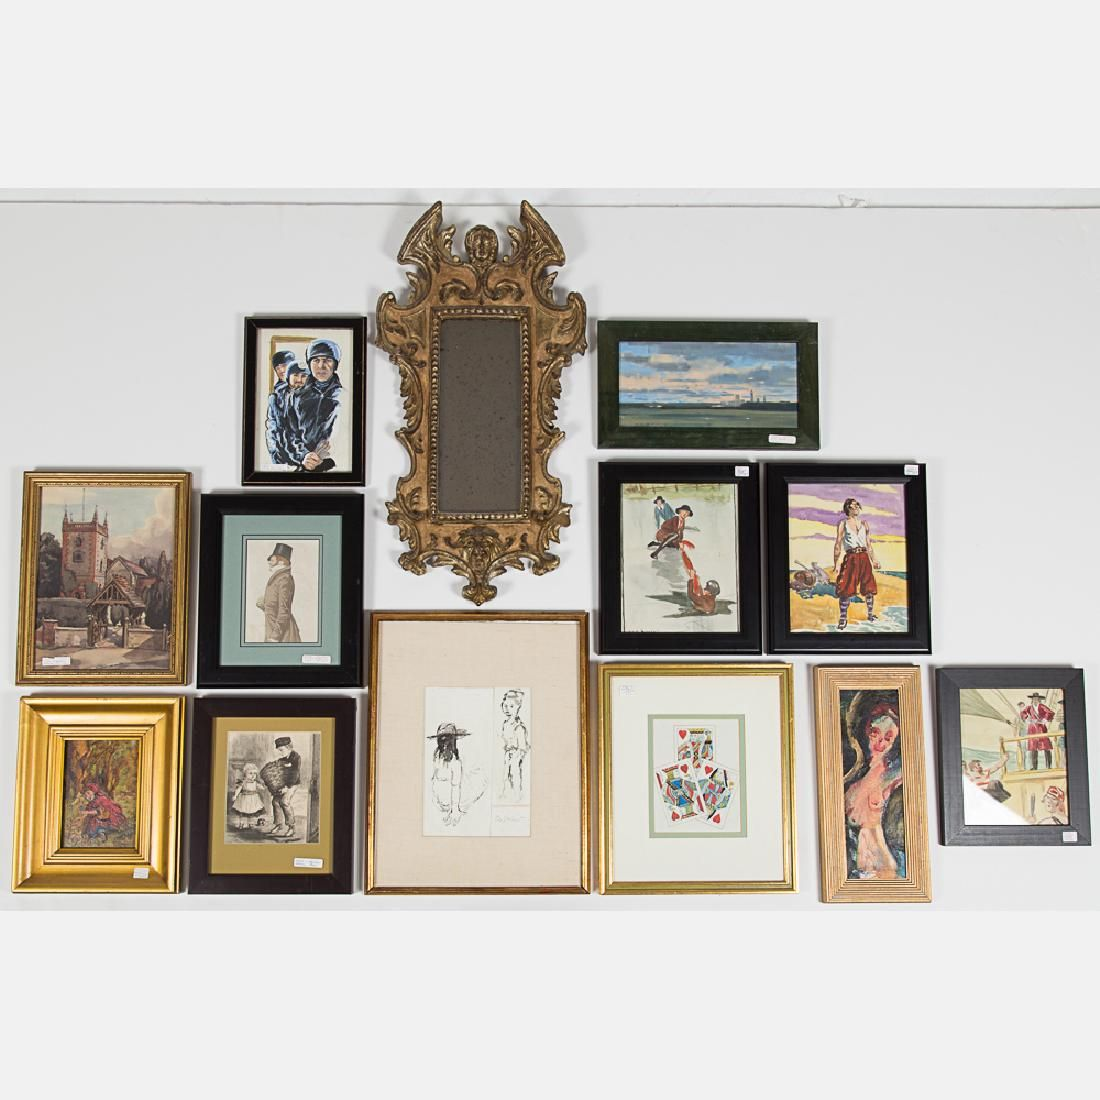 A Miscellaneous Collection of Framed Watercolor and